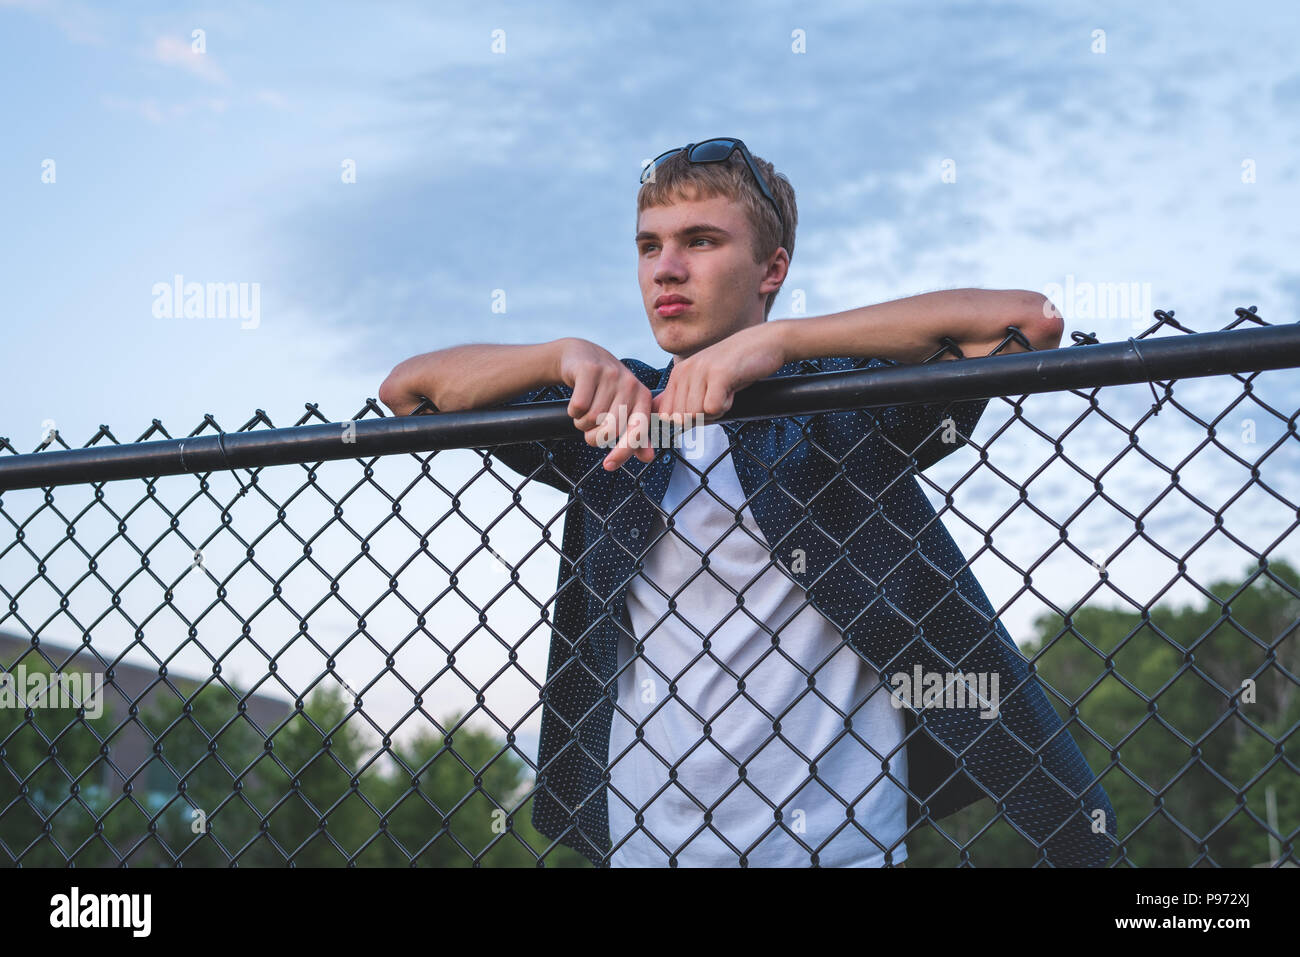 Sad teenager leaning against a chain link fence. - Stock Image